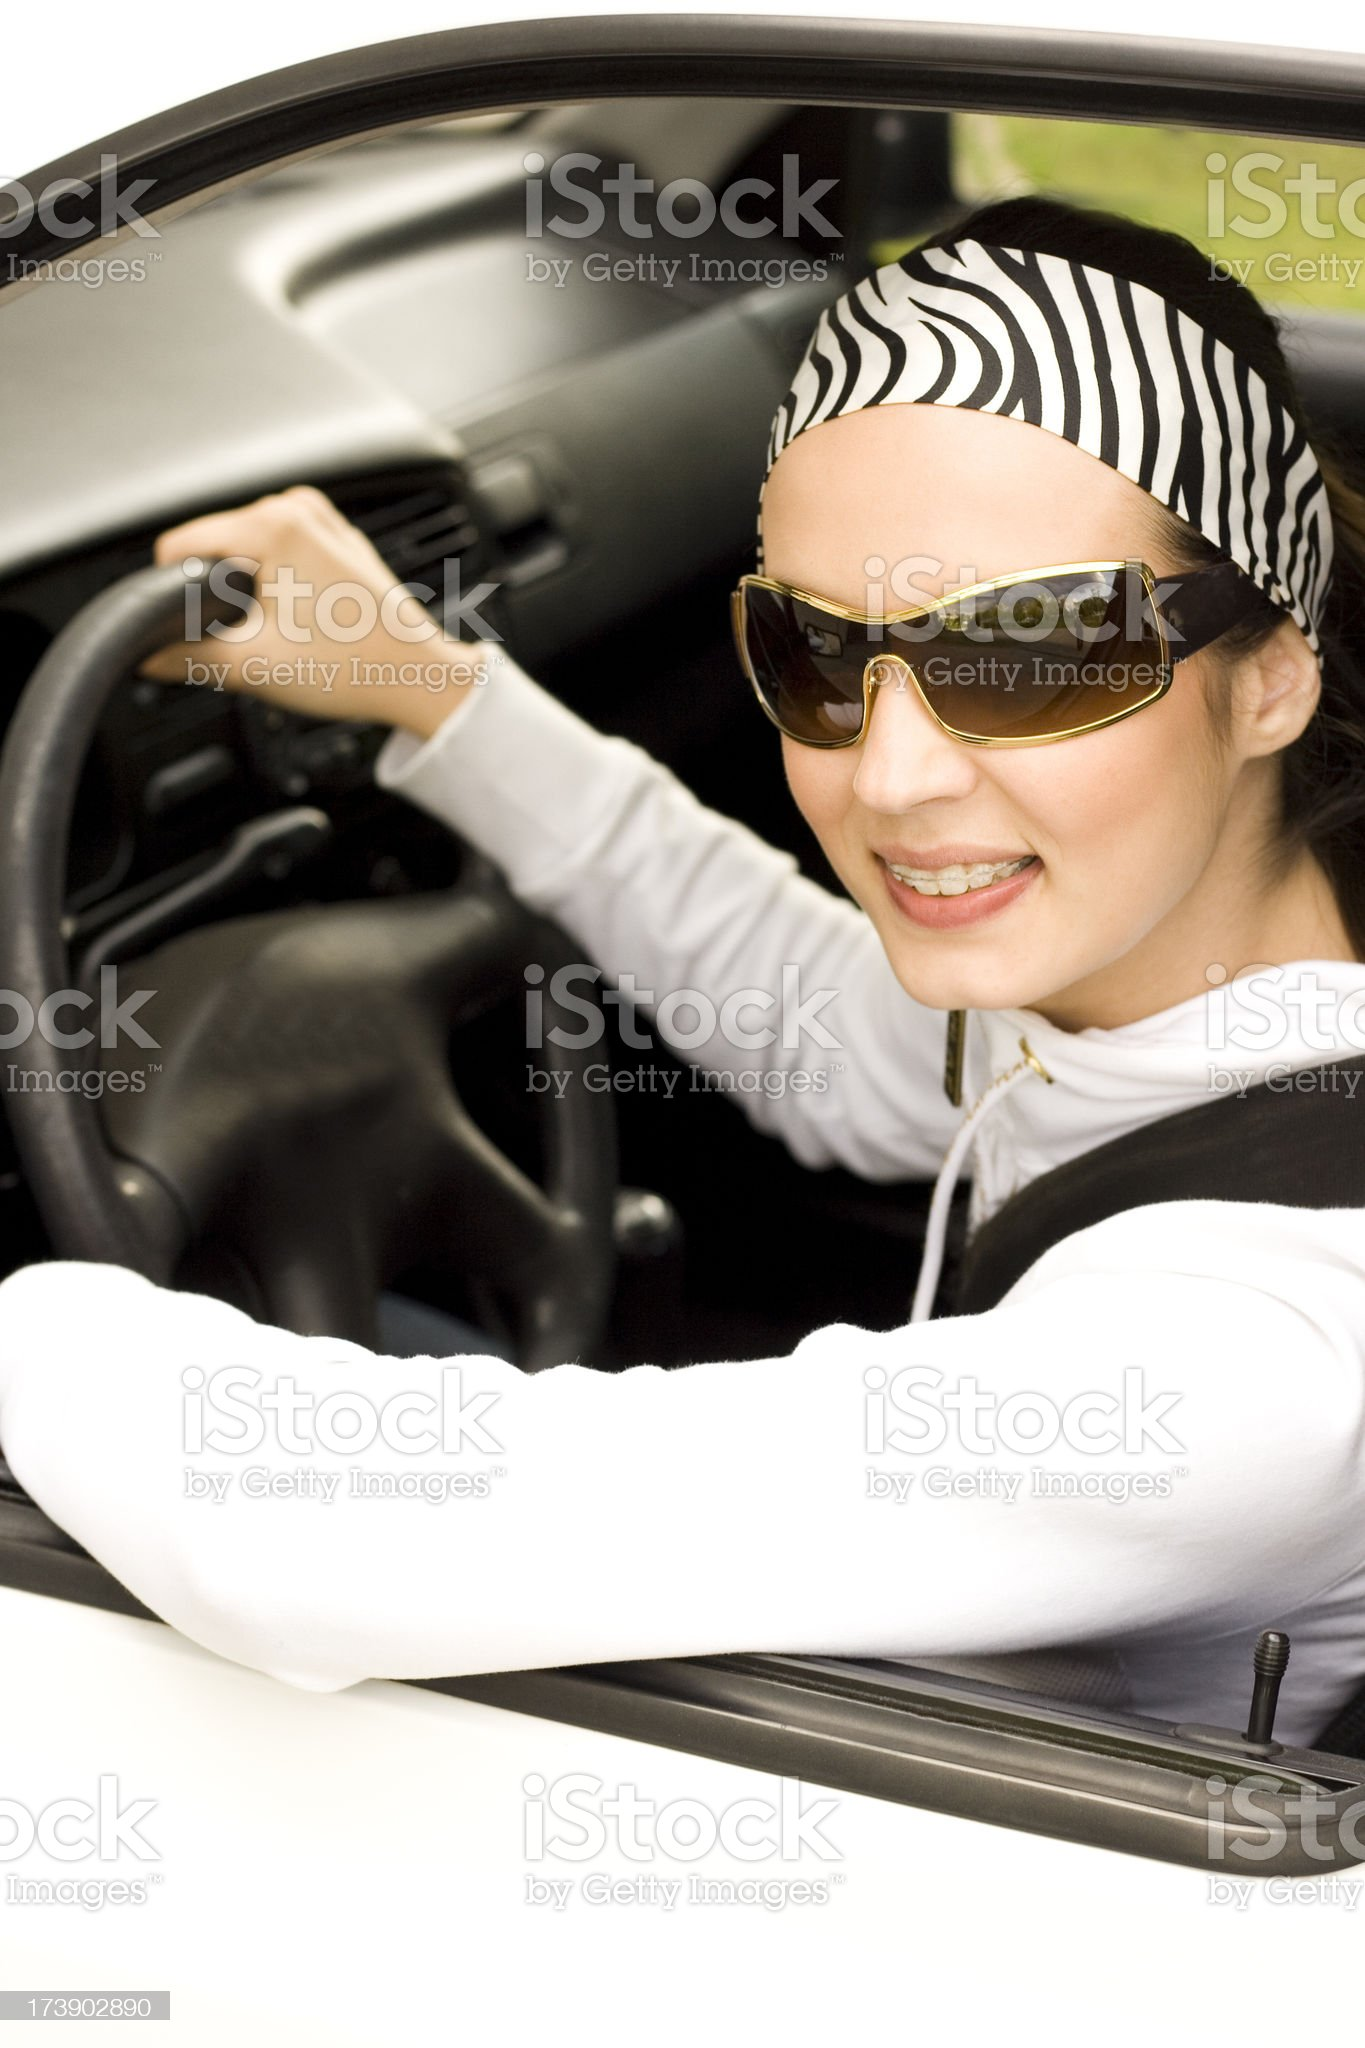 Cool  Young Driver royalty-free stock photo